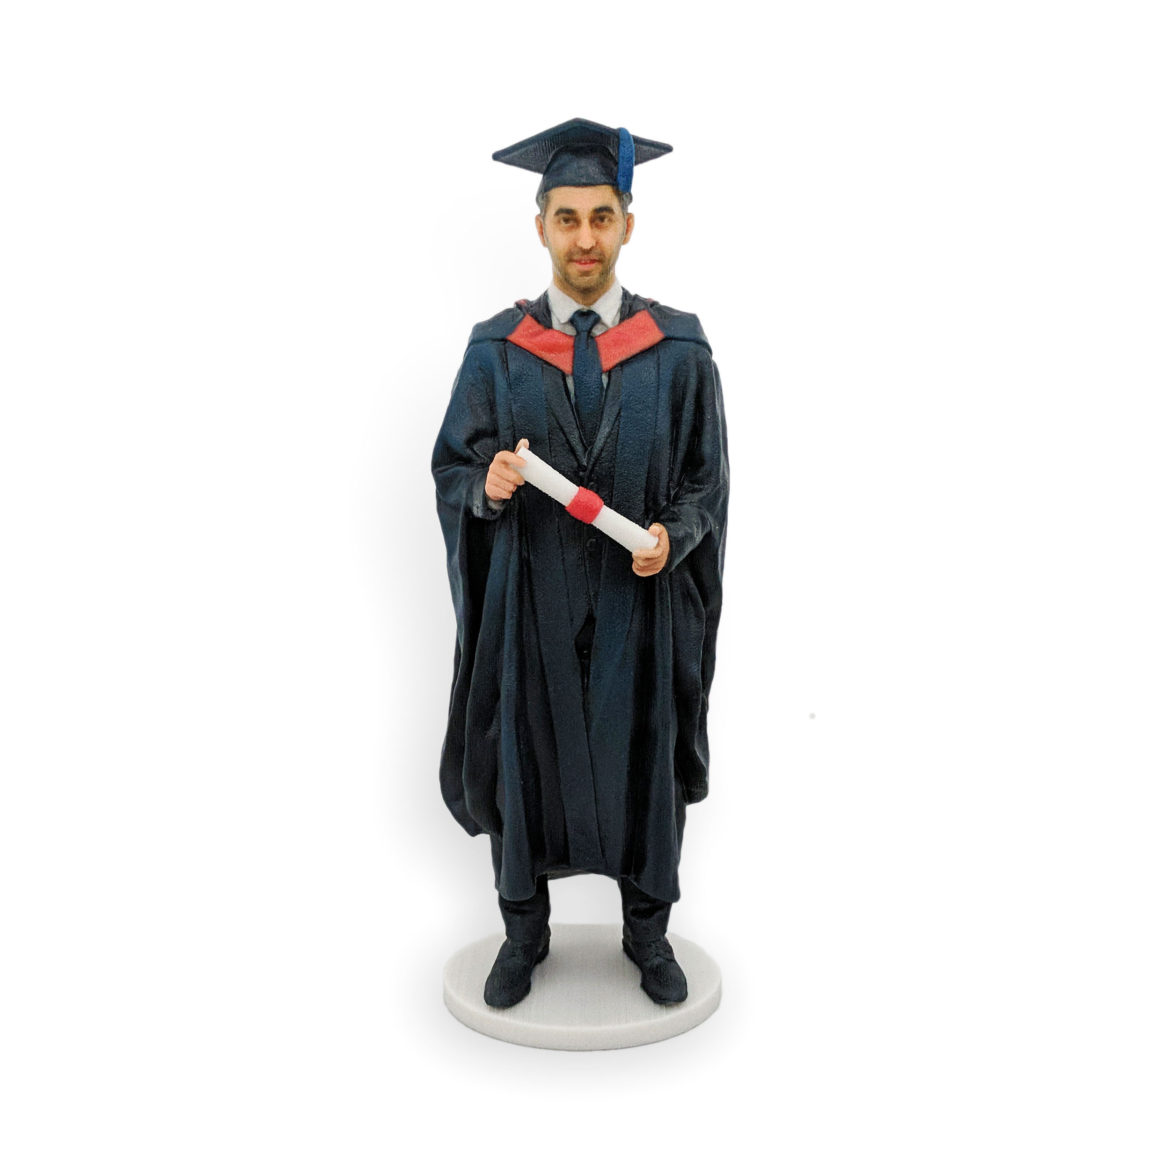 my3Dtwin, Graduation Figurine of a man in gown and scroll in his hands